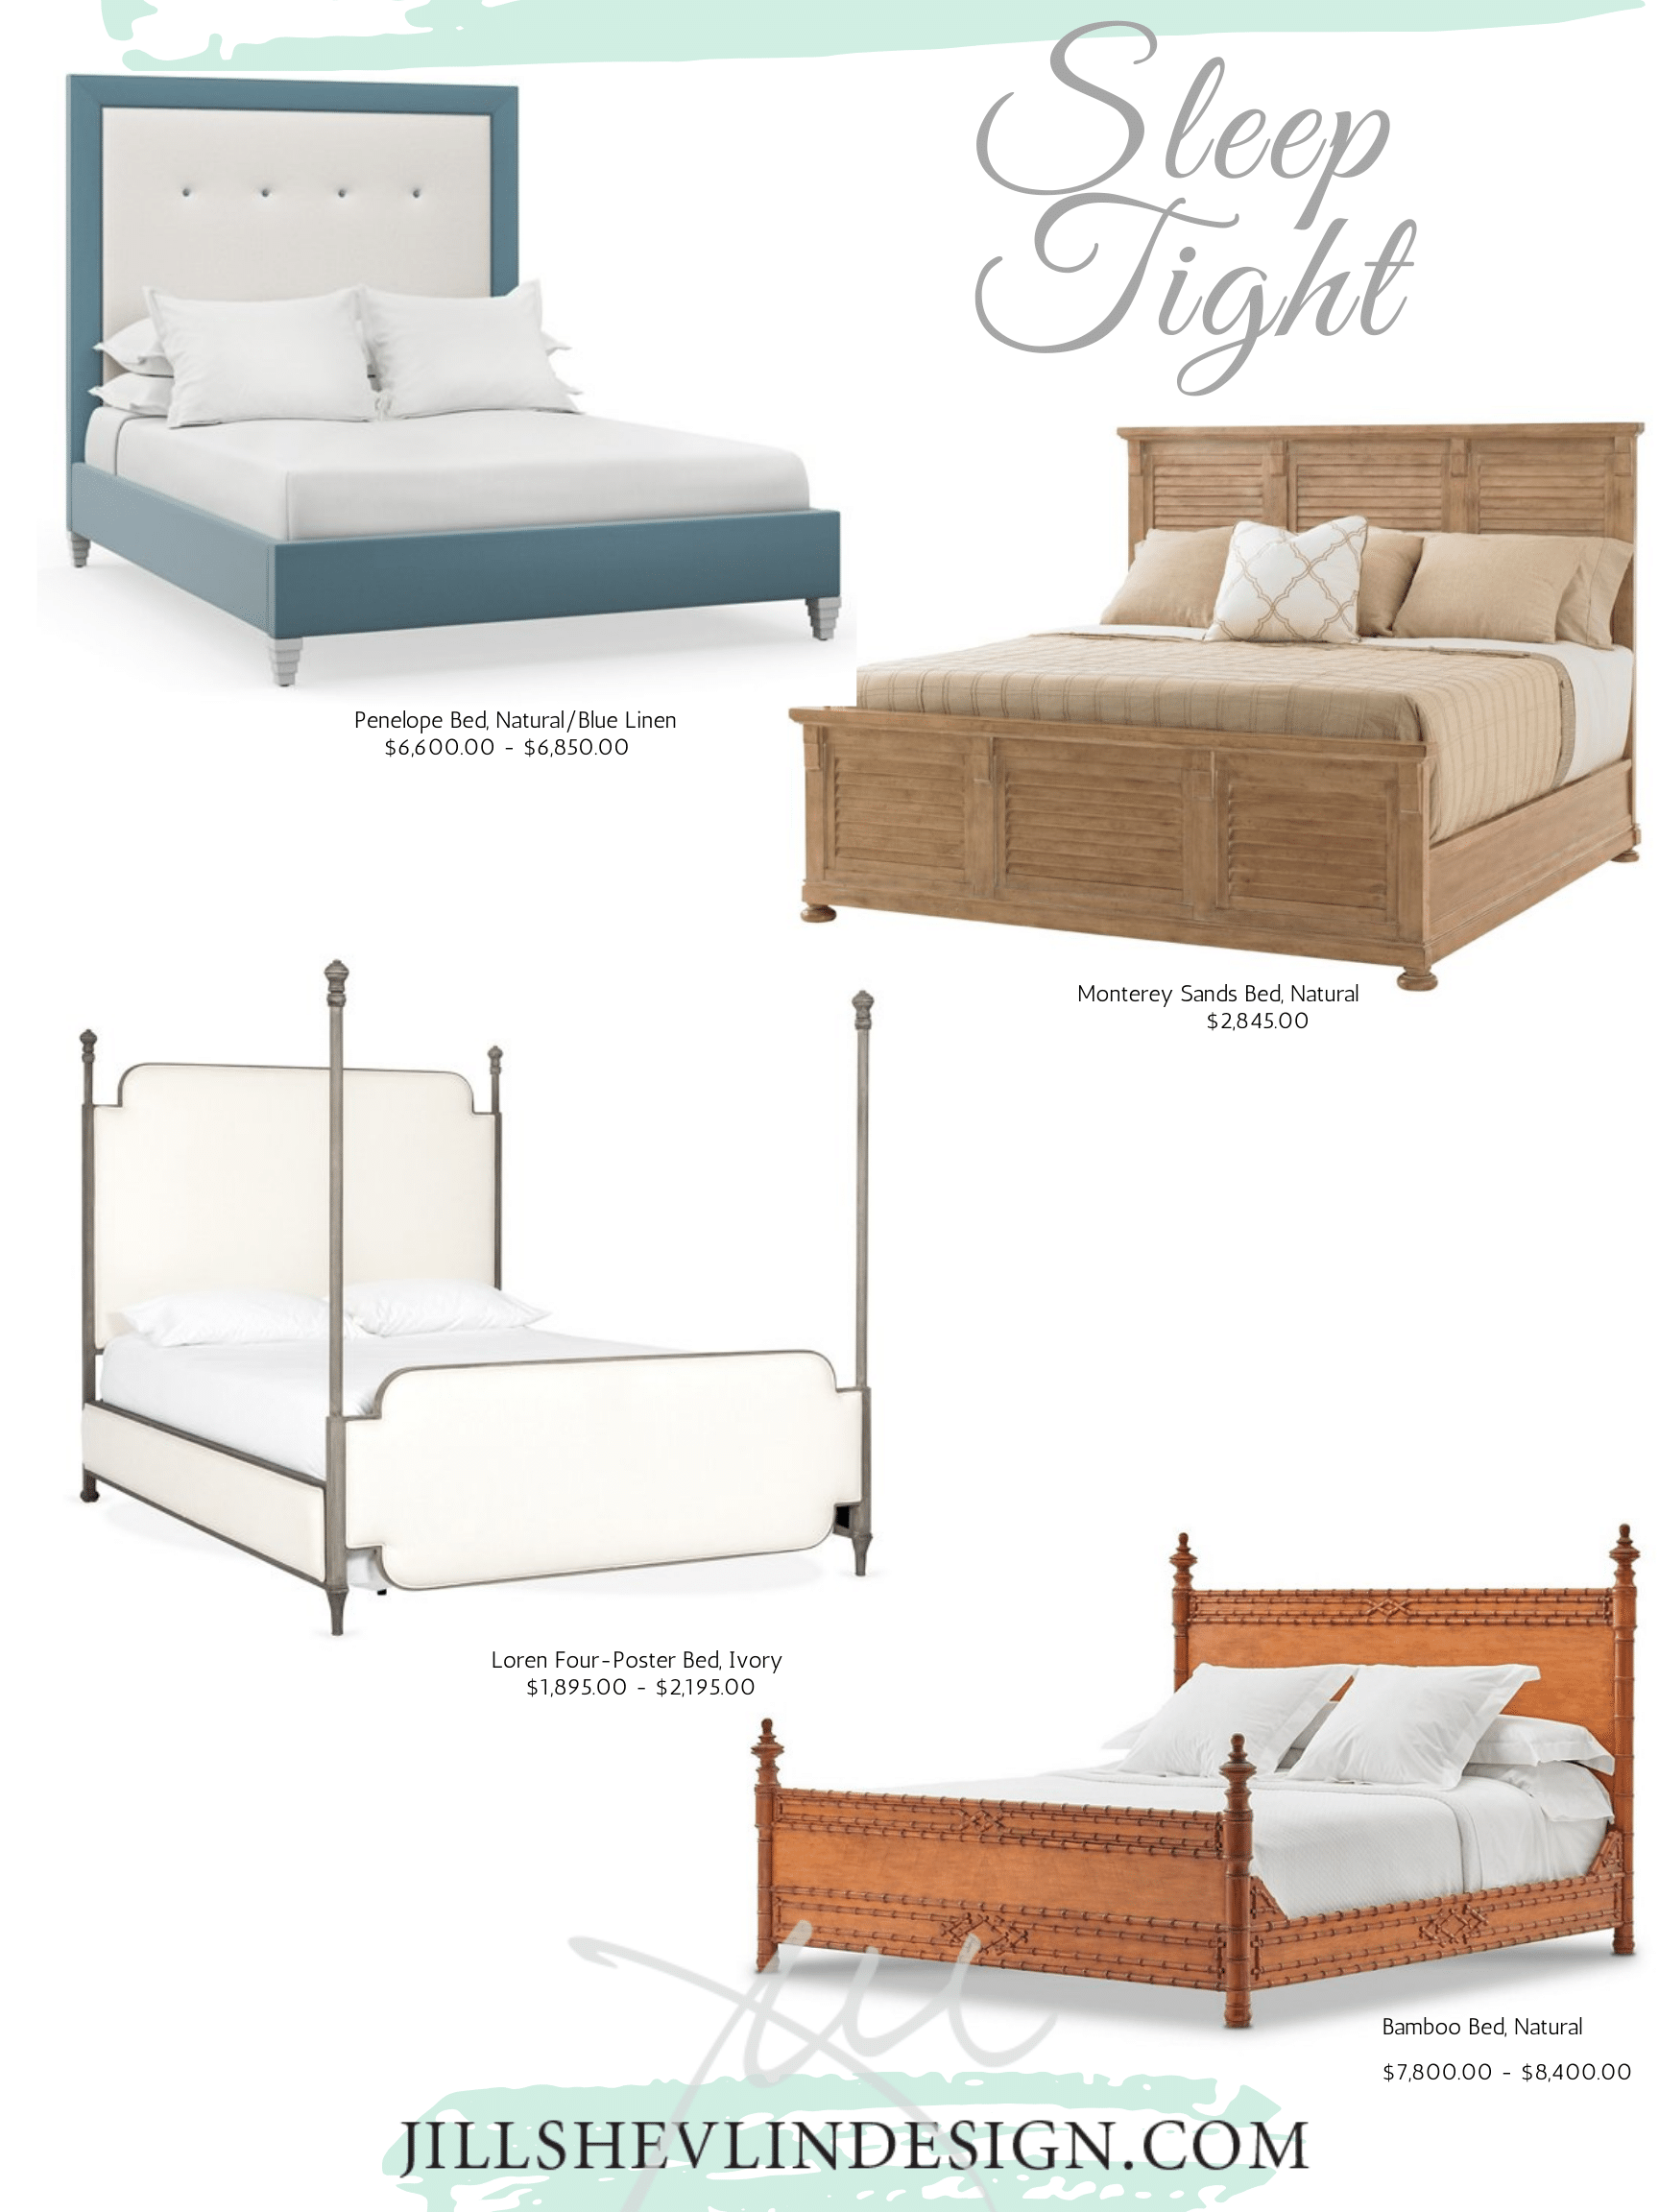 Sleeping Beauty Beds Shop Jill Shevlin Design Vero Beach Interior Designer